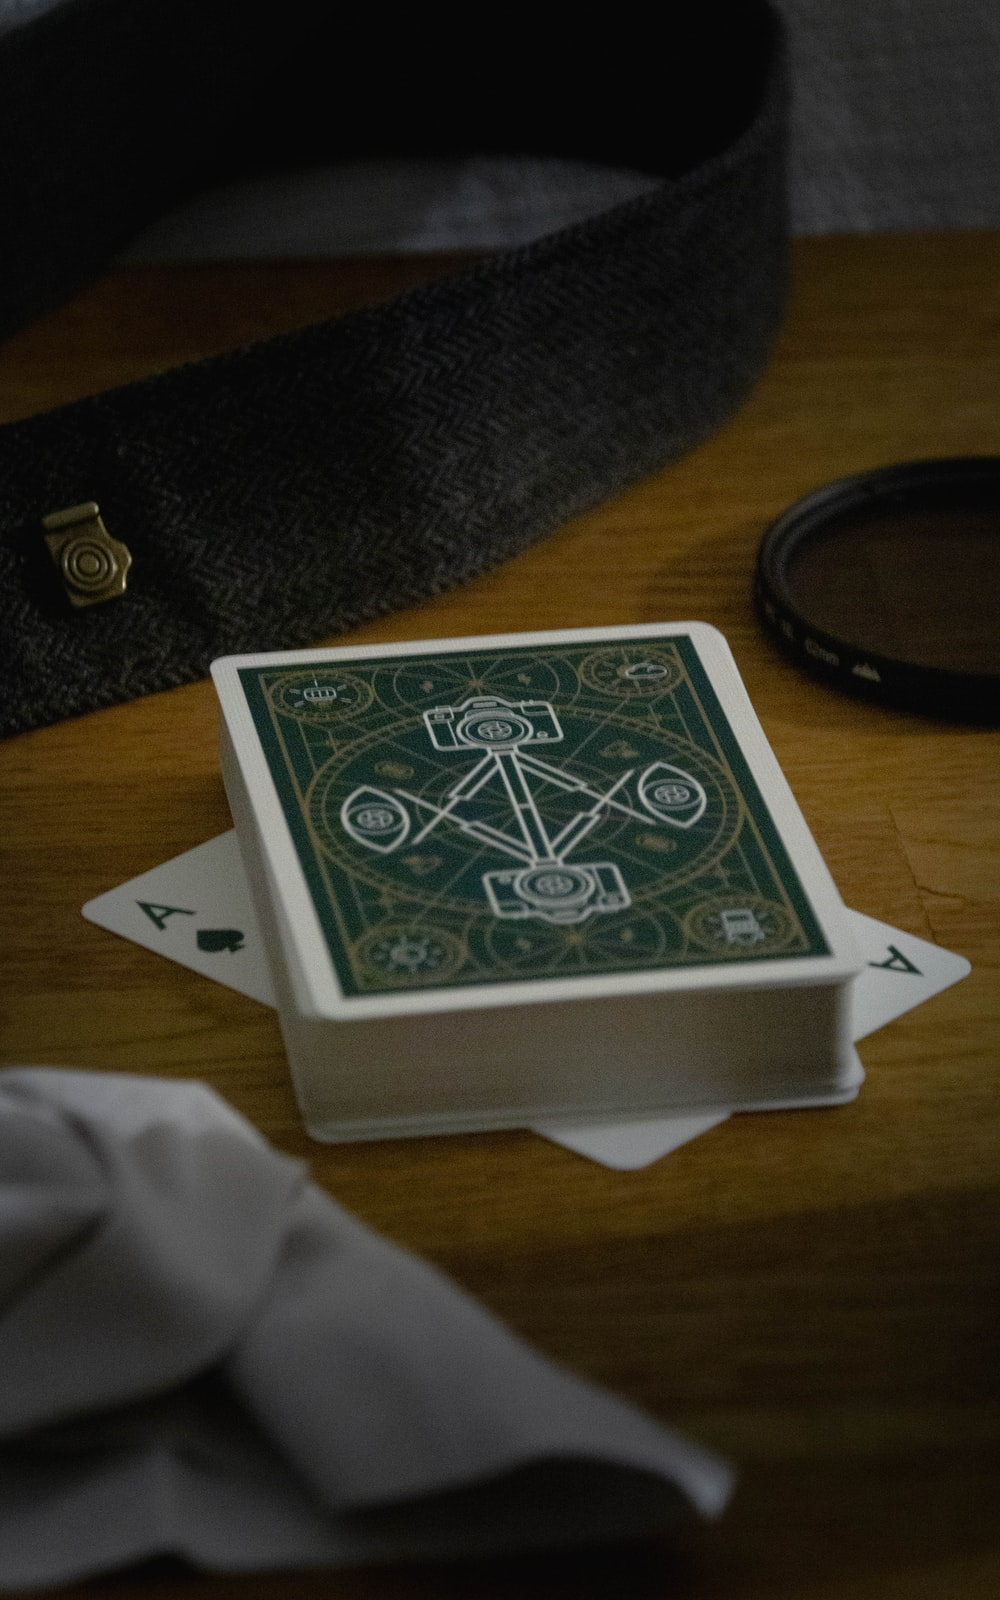 green and white playing card on white box